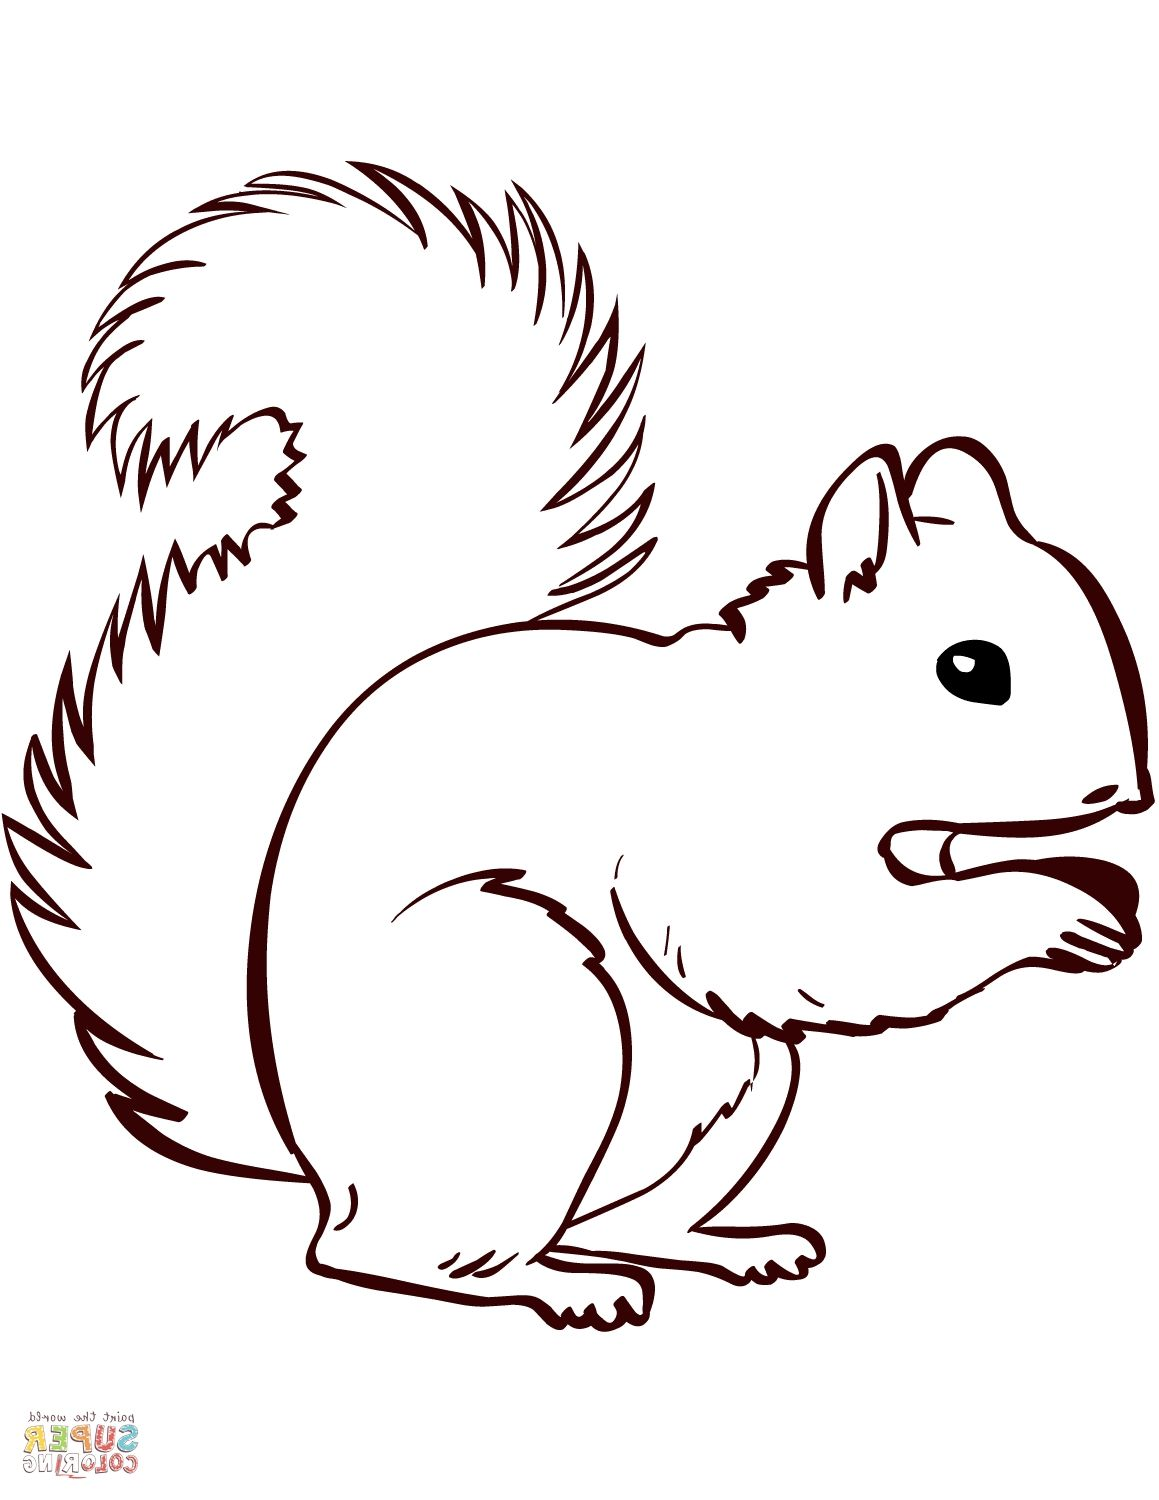 Squirrel Coloring Page Squirrel coloring page, Squirrel